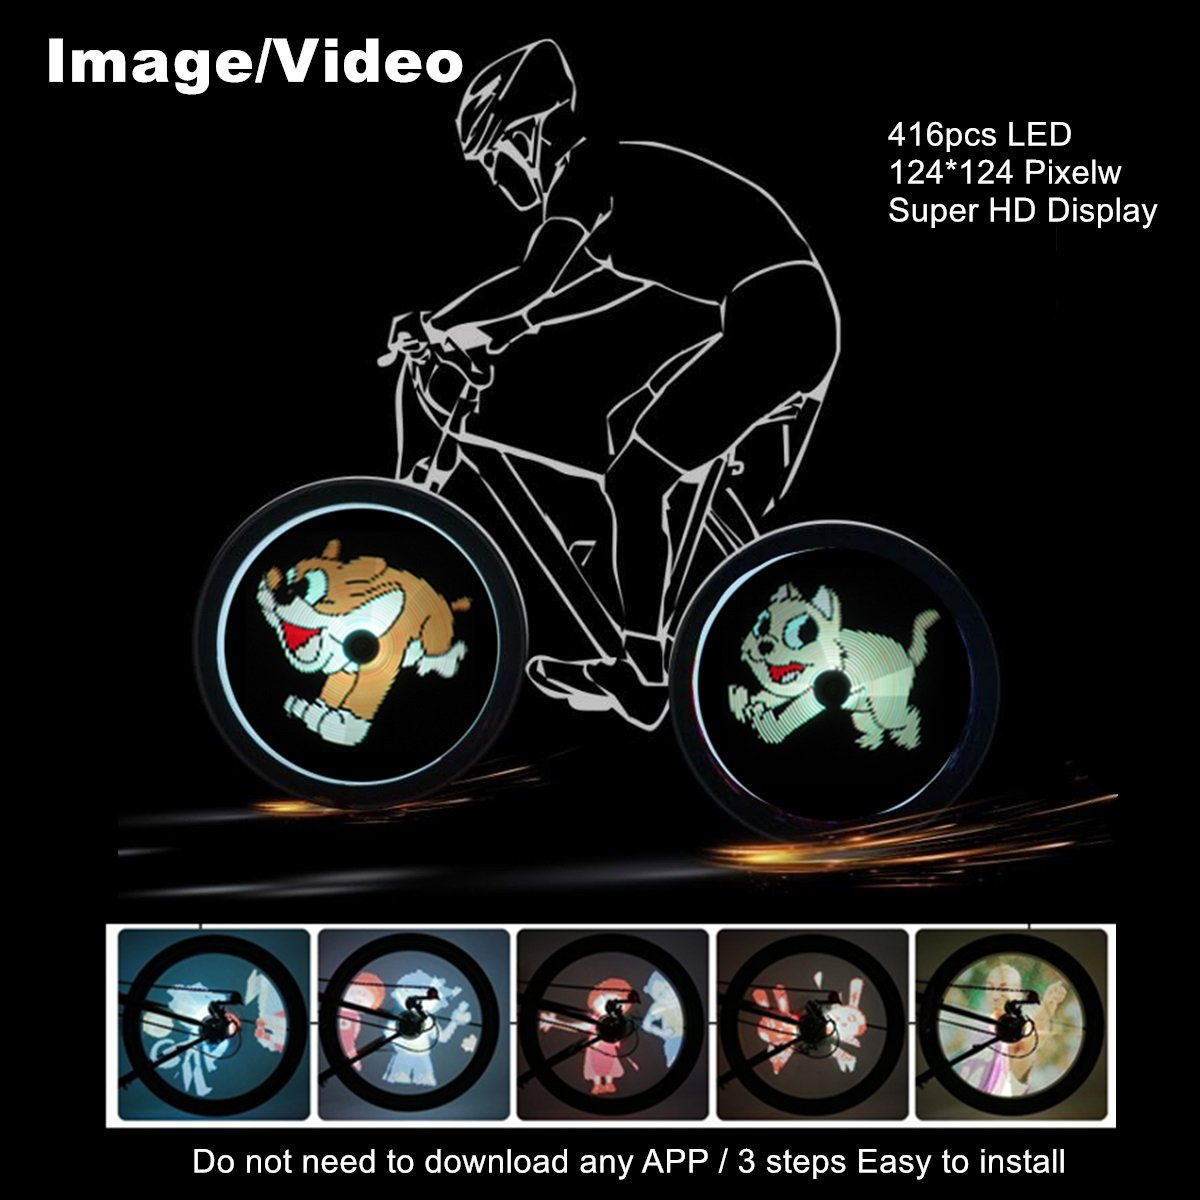 Taiyu Bike Wheel LED Light / Image and Video - 416pcs LEDs 124124 High Resolution Display - Built-in Gyroscope, Easy to Install (BK8 Pro :416 LED)